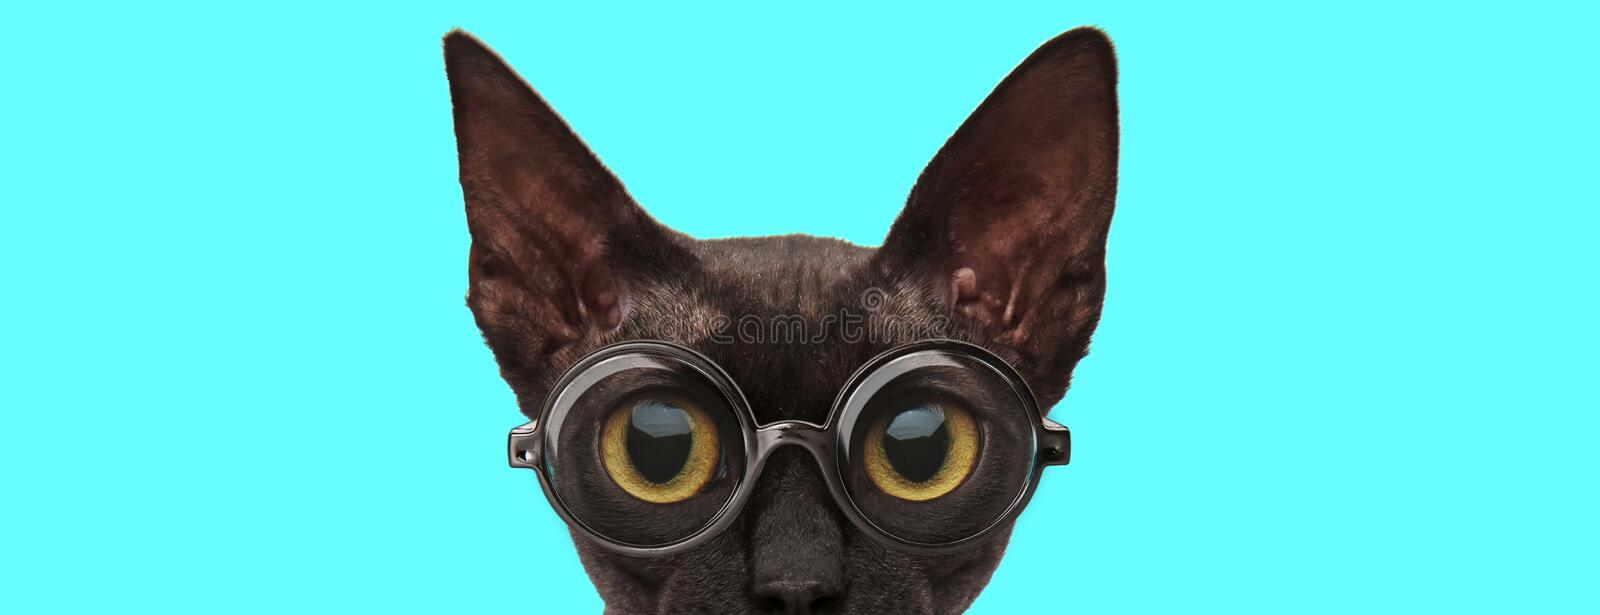 Cat hiding her face from camera and wearing eyeglasses royalty free stock photography